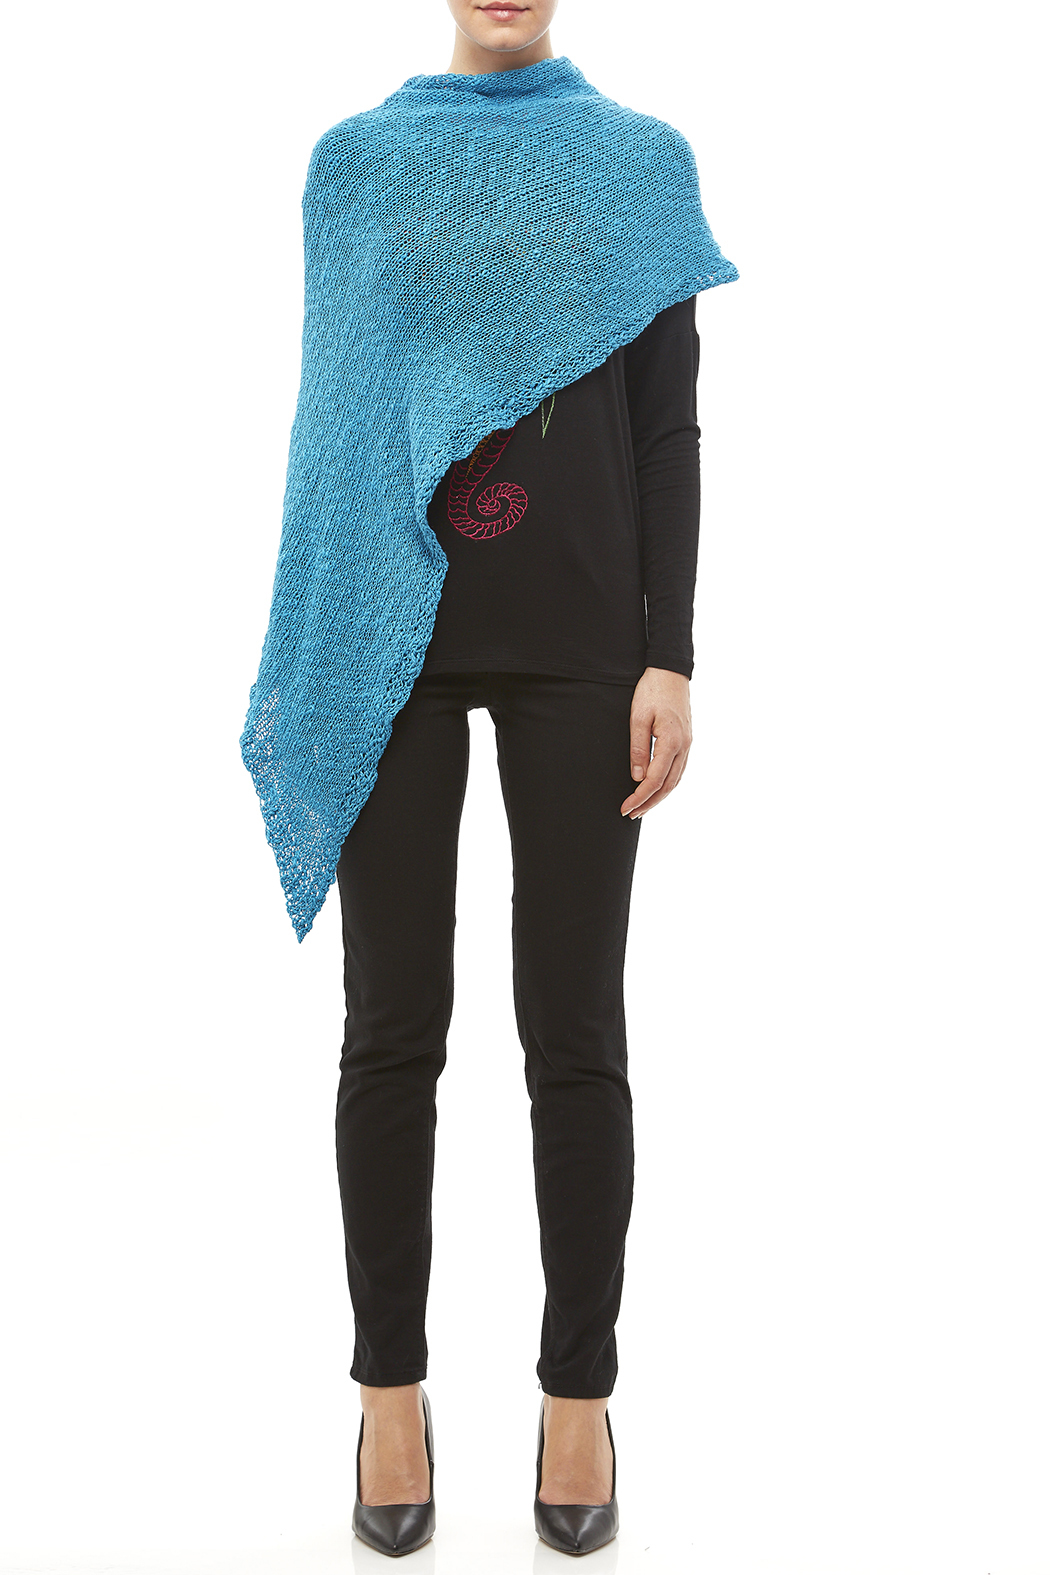 DC KNITS Cotton Chameleon Wrap - Front Cropped Image